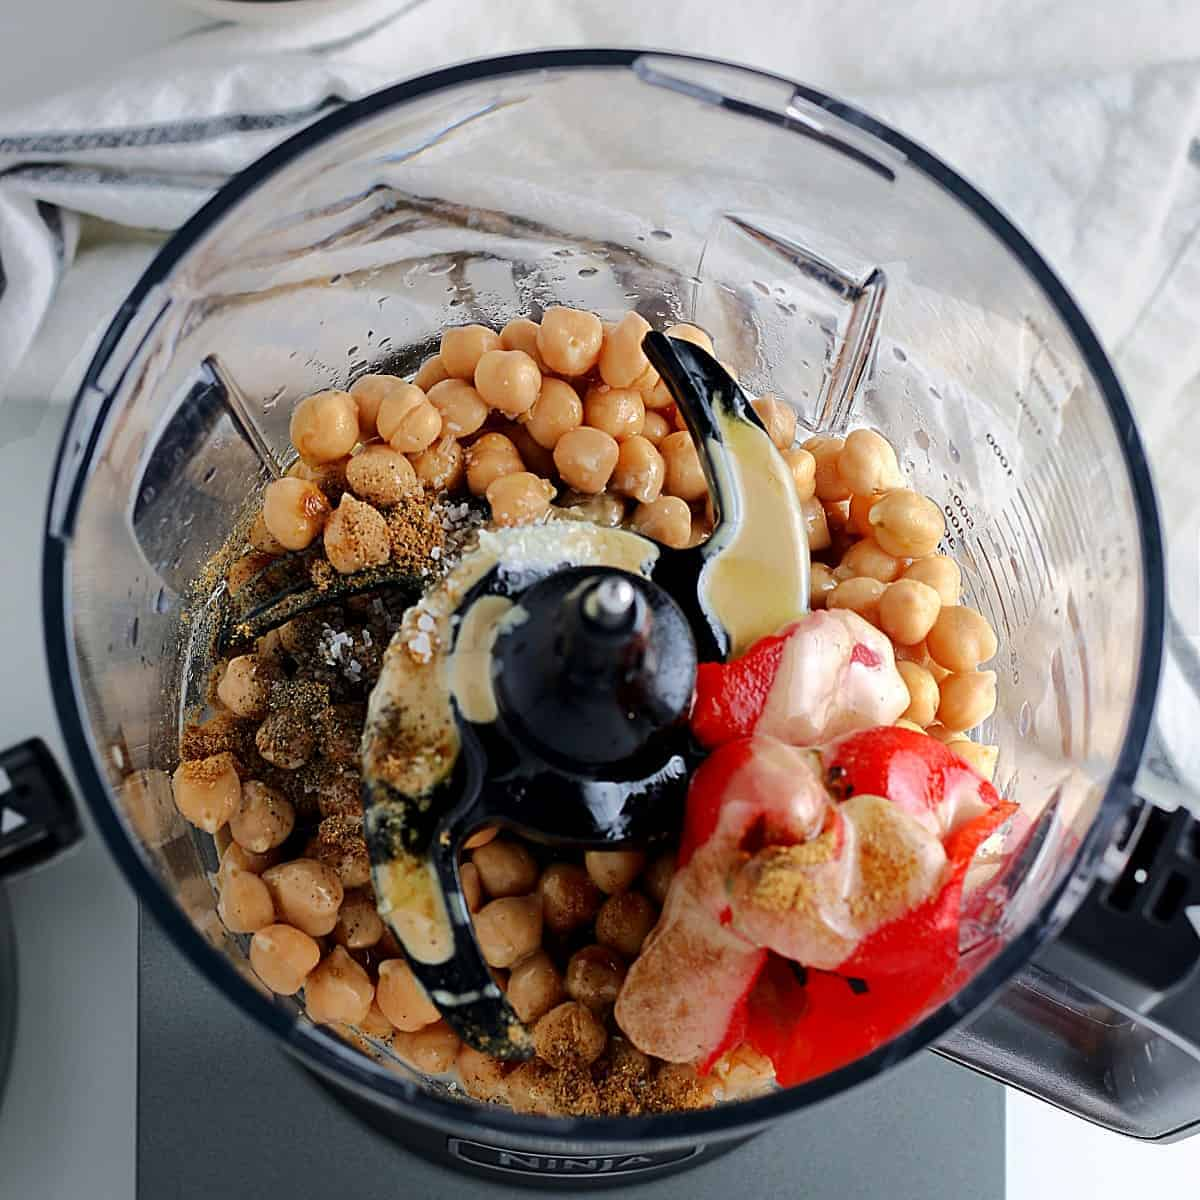 Overhead of a food processor filled with chickpeas, bells, tahini and seasoning.